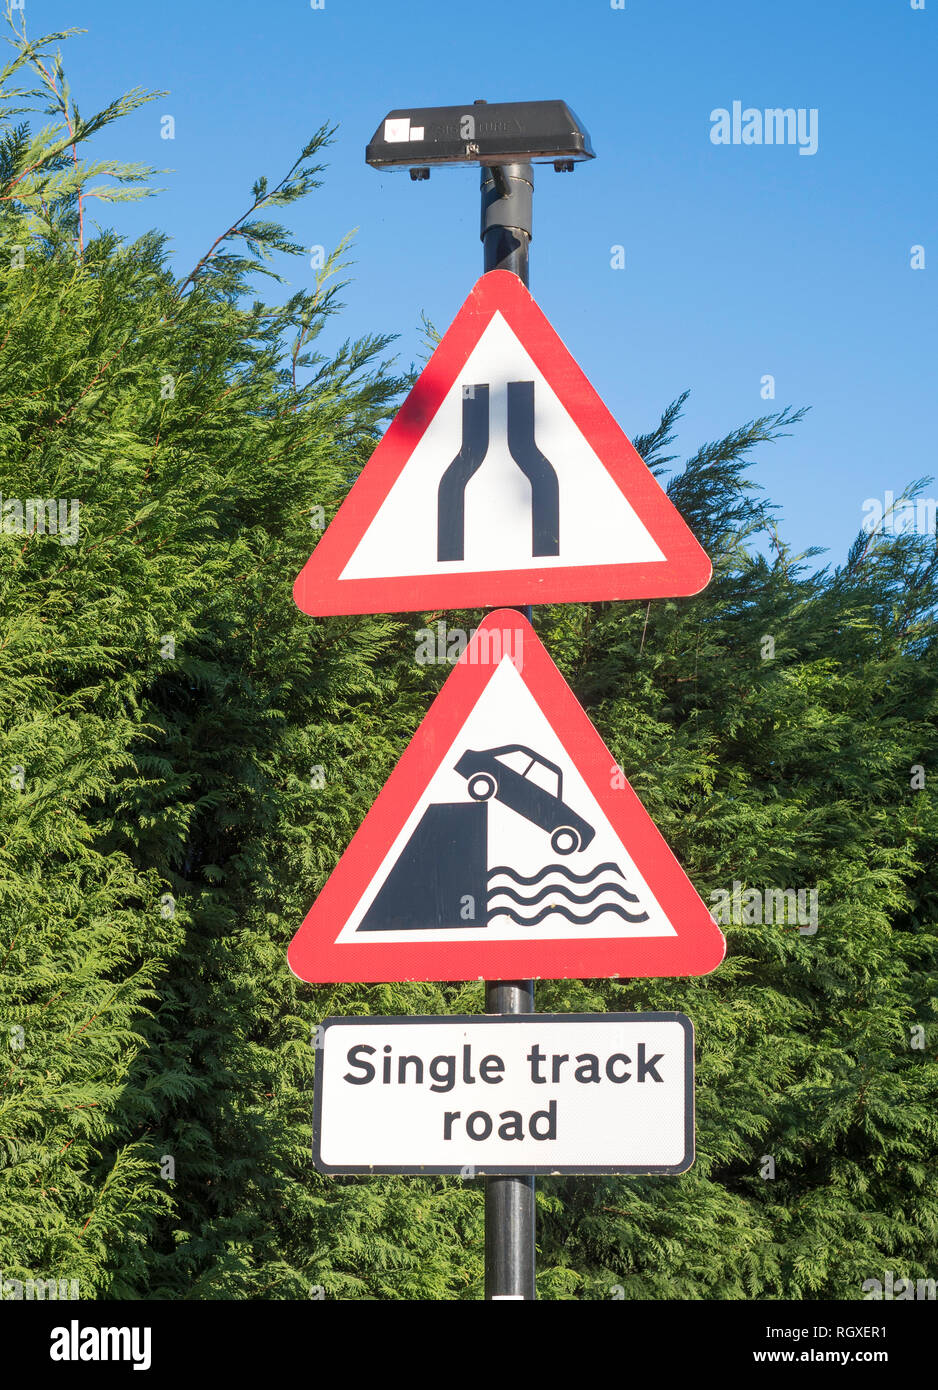 Triangular warning road signs, road narrows and river bank or quayside, a risk of drowning, England, UK - Stock Image